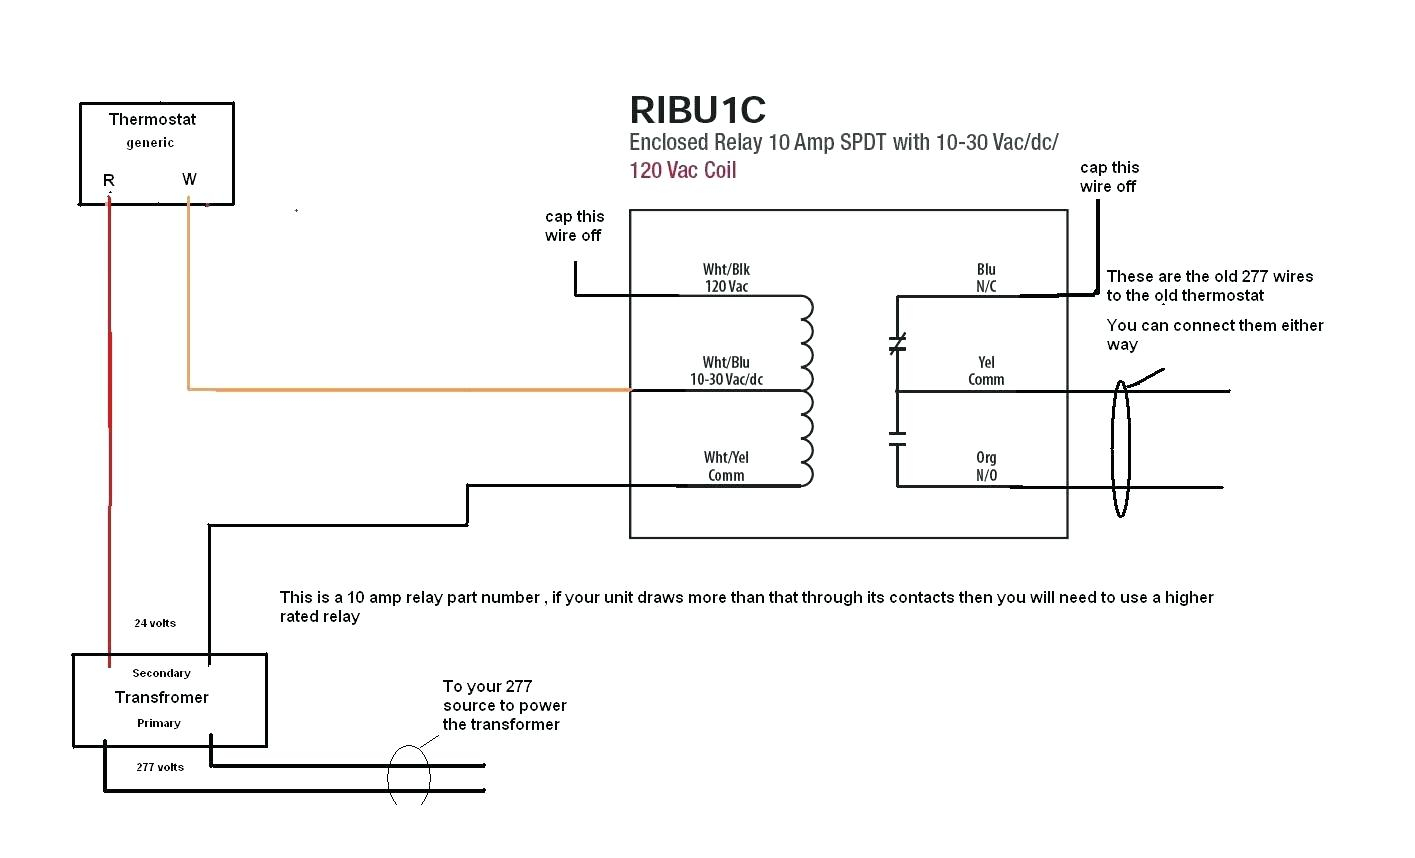 chromalox heater wiring diagram Collection-Chromalox Heater Wiring Diagram Fresh Chromalox Heater Wiring Diagram Immersion for Baseboard Web Site 14-p